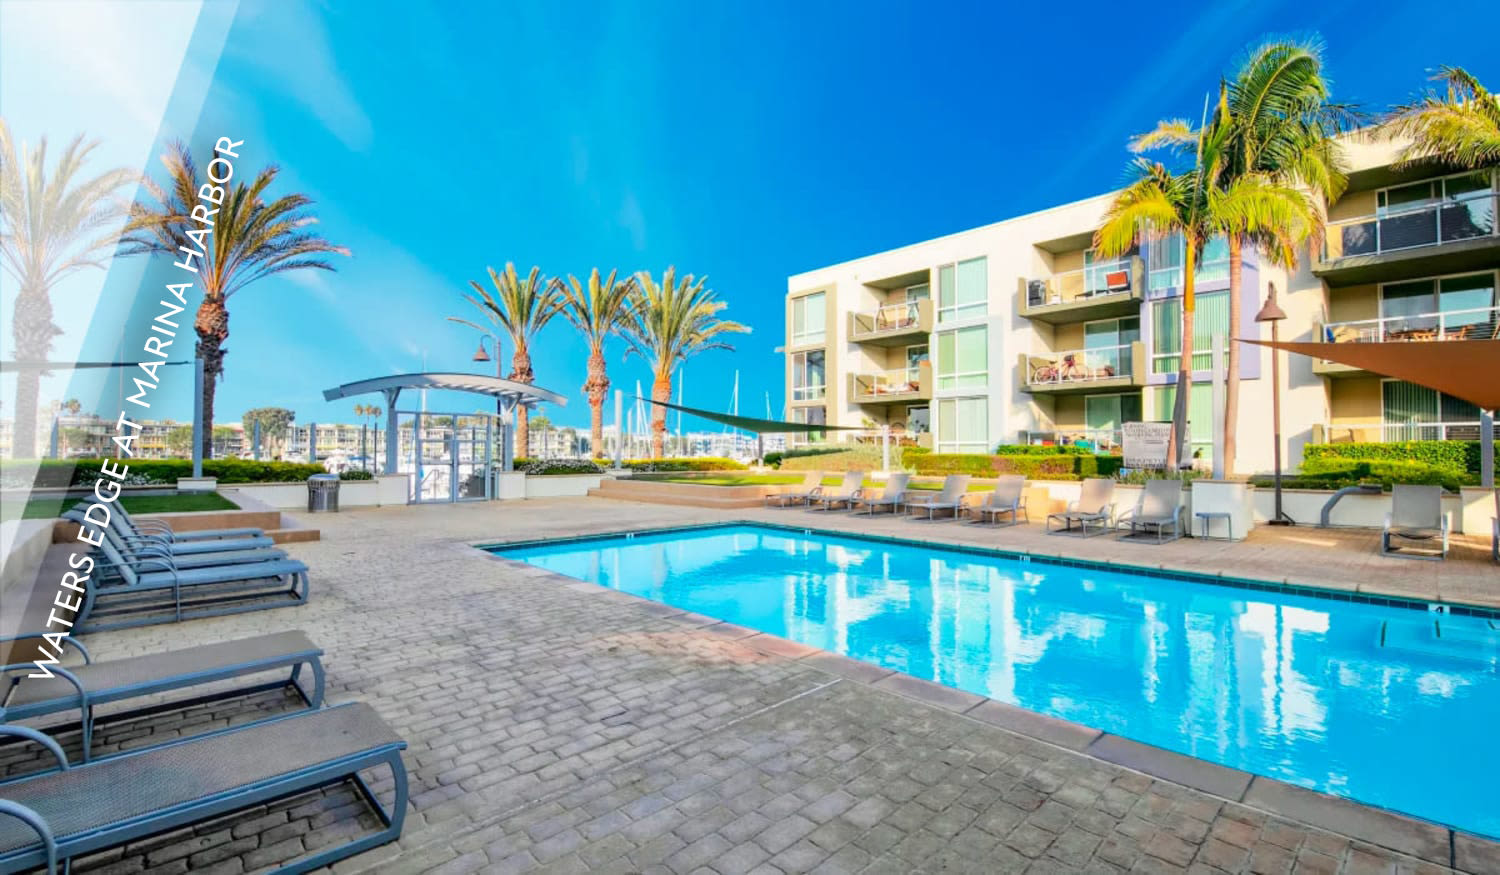 View the Waters Edge at Marina Harbor luxury waterside apartment community by E&S Ring Management Corporation in Los Angeles, California